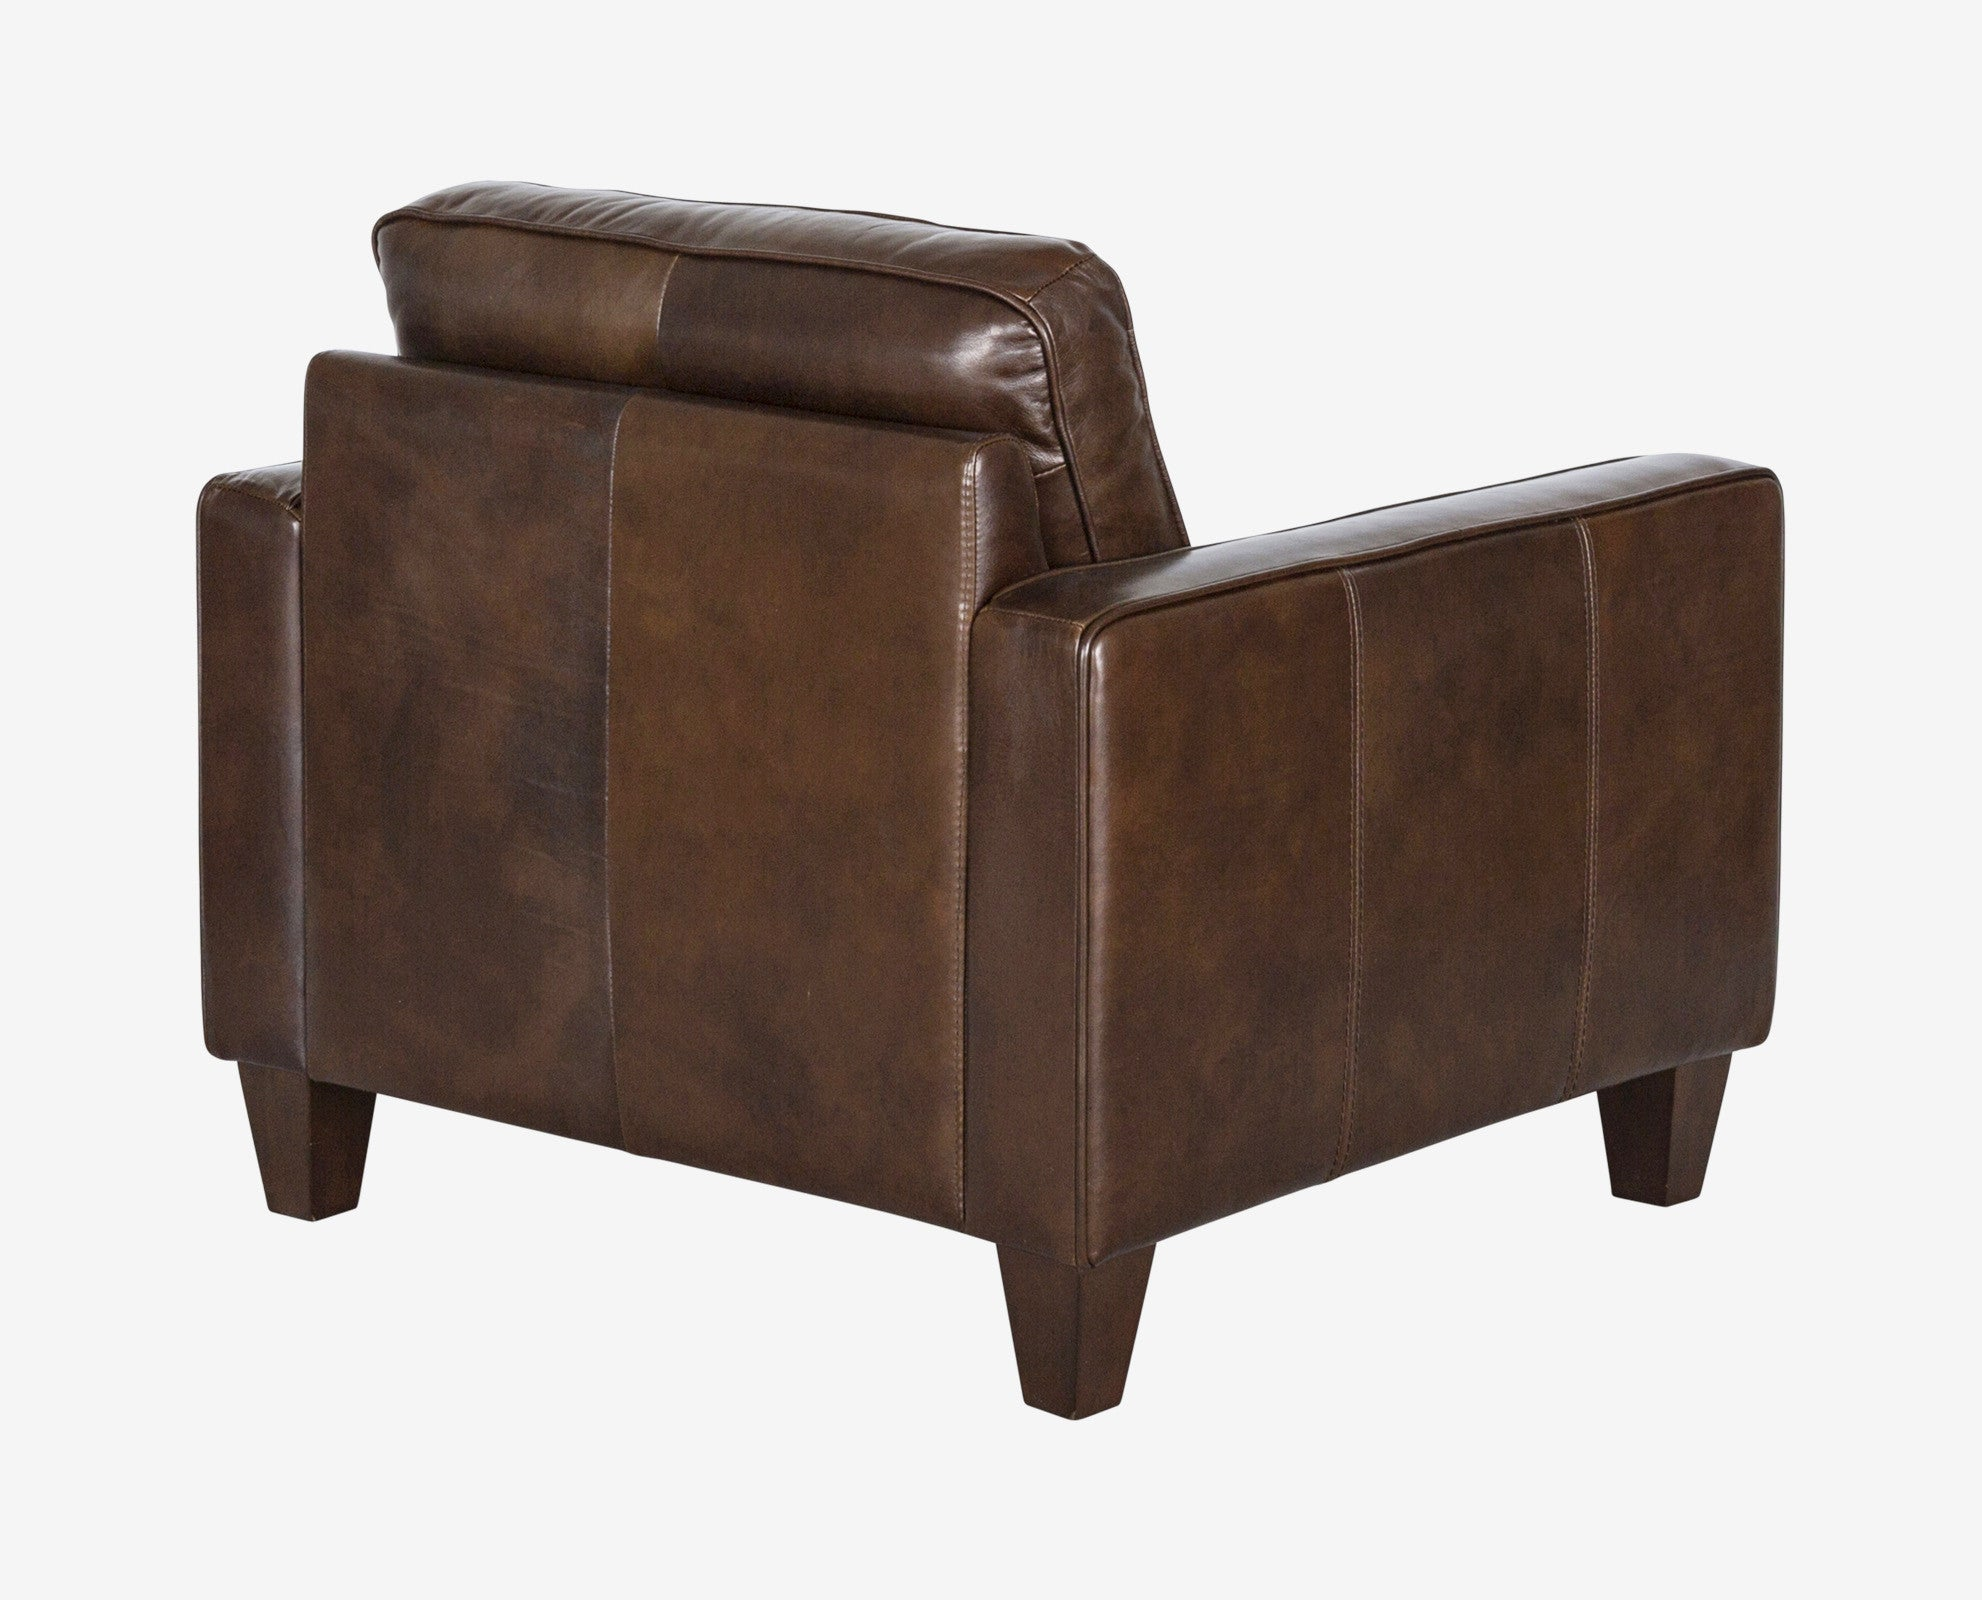 Classic angular brown leather Scandinavian seat